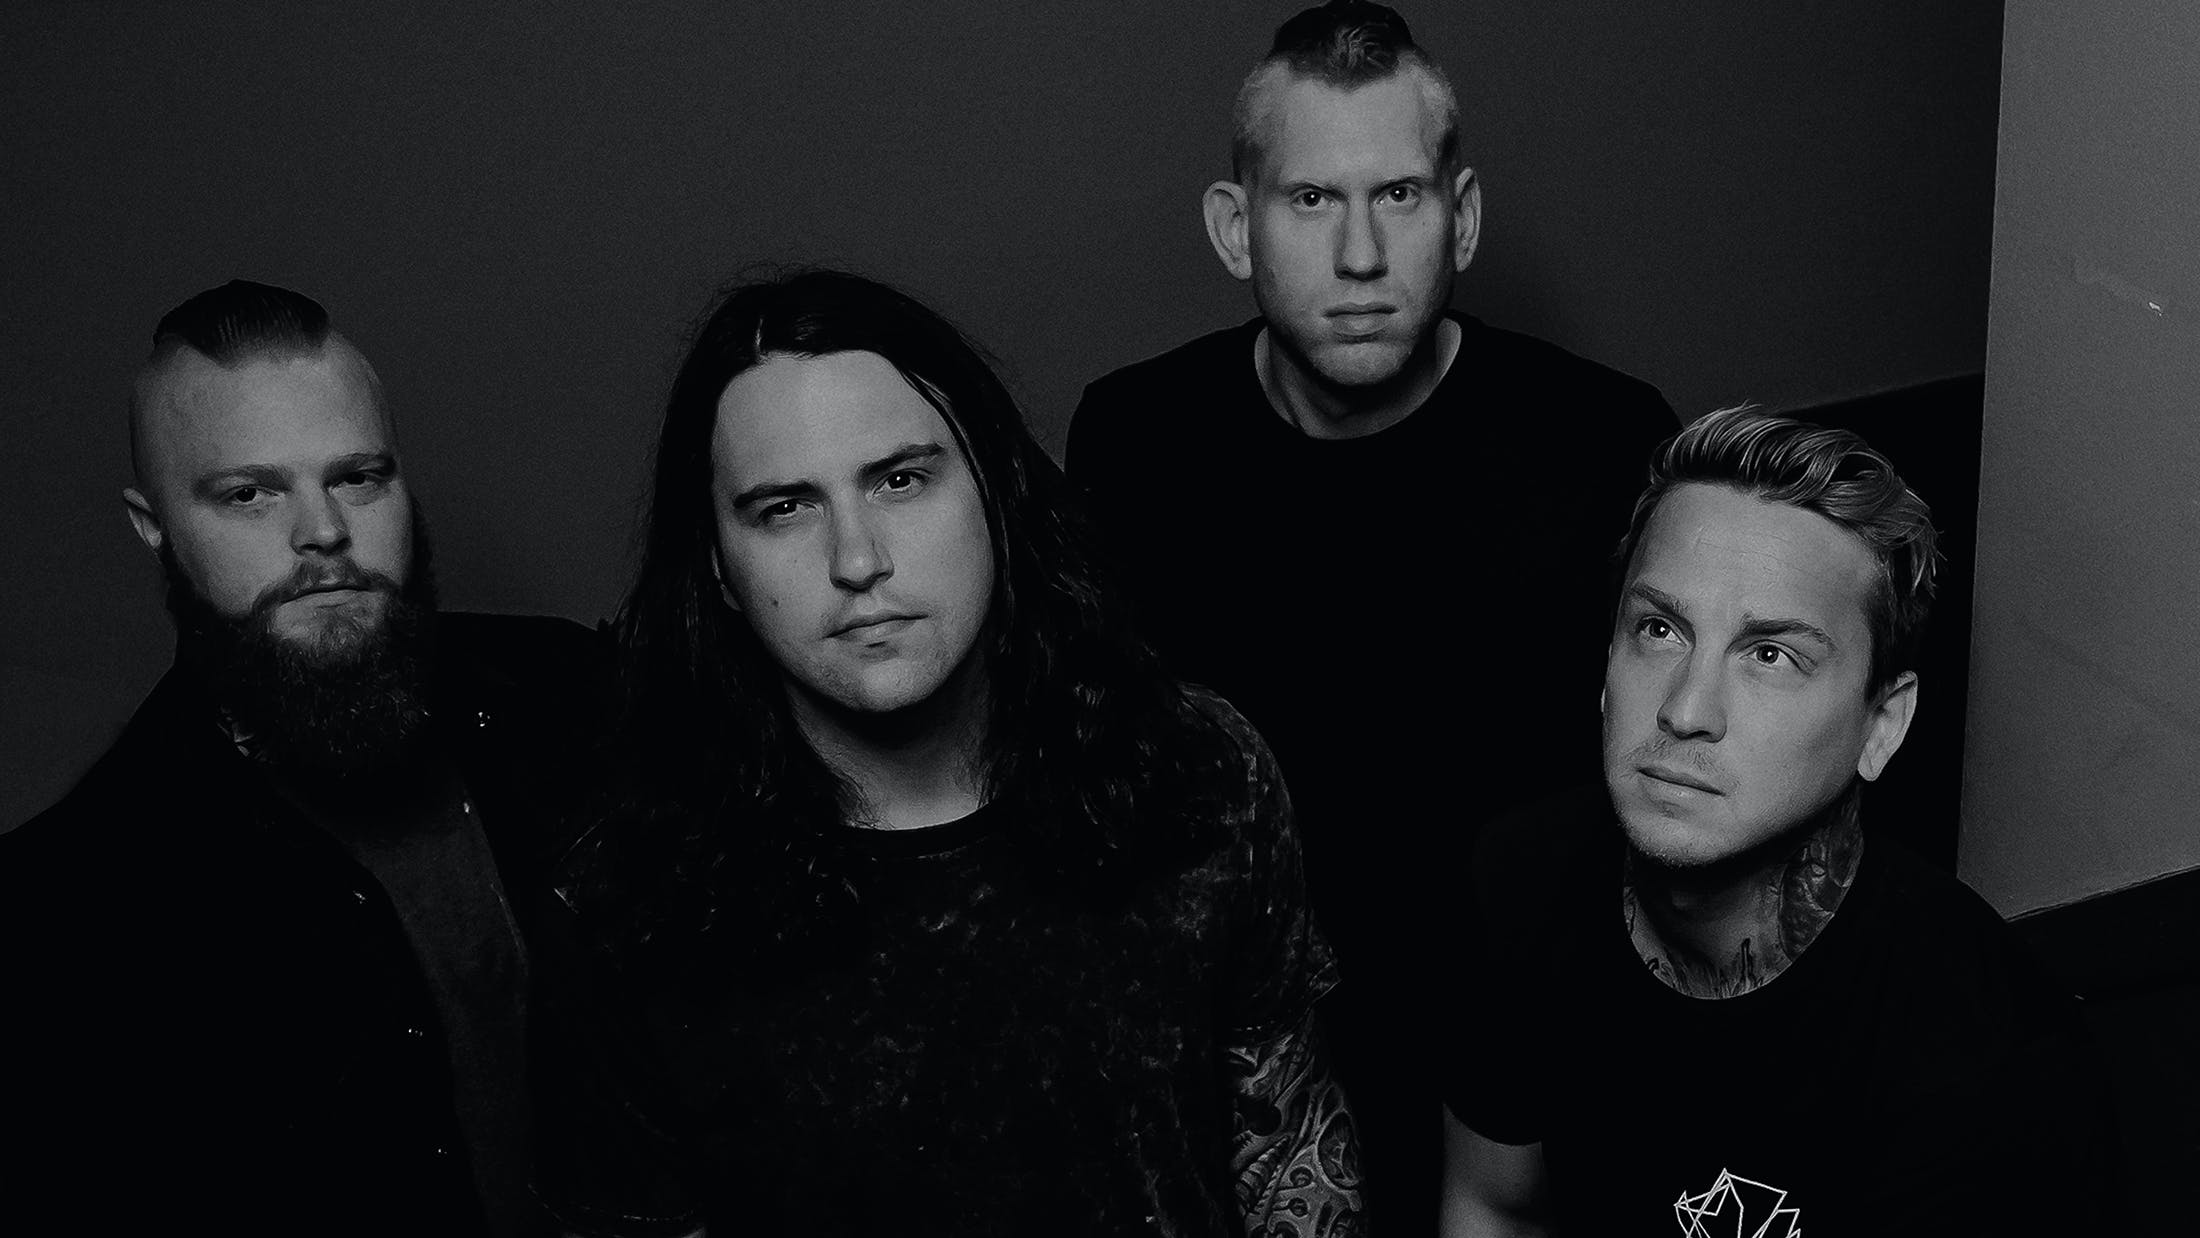 Born Of Osiris' Guitarist's House Robbed While He Was On Tour